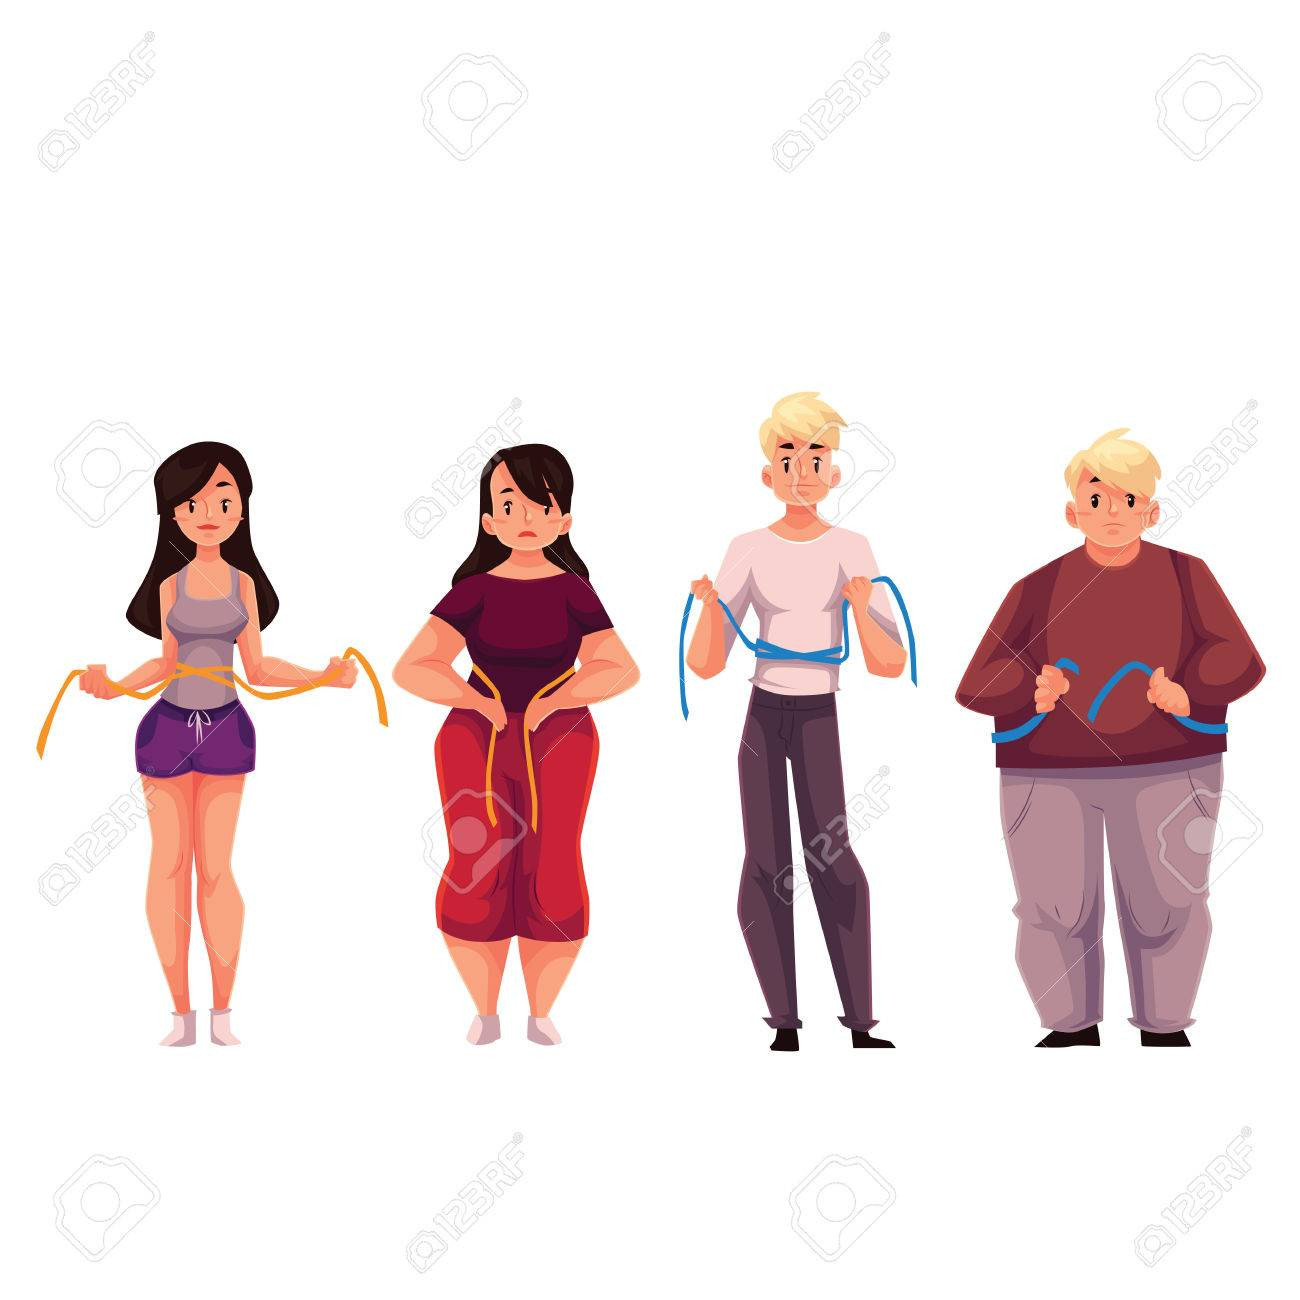 Fit And Fat Men And Women Measuring Themselves With A Tape Cartoon